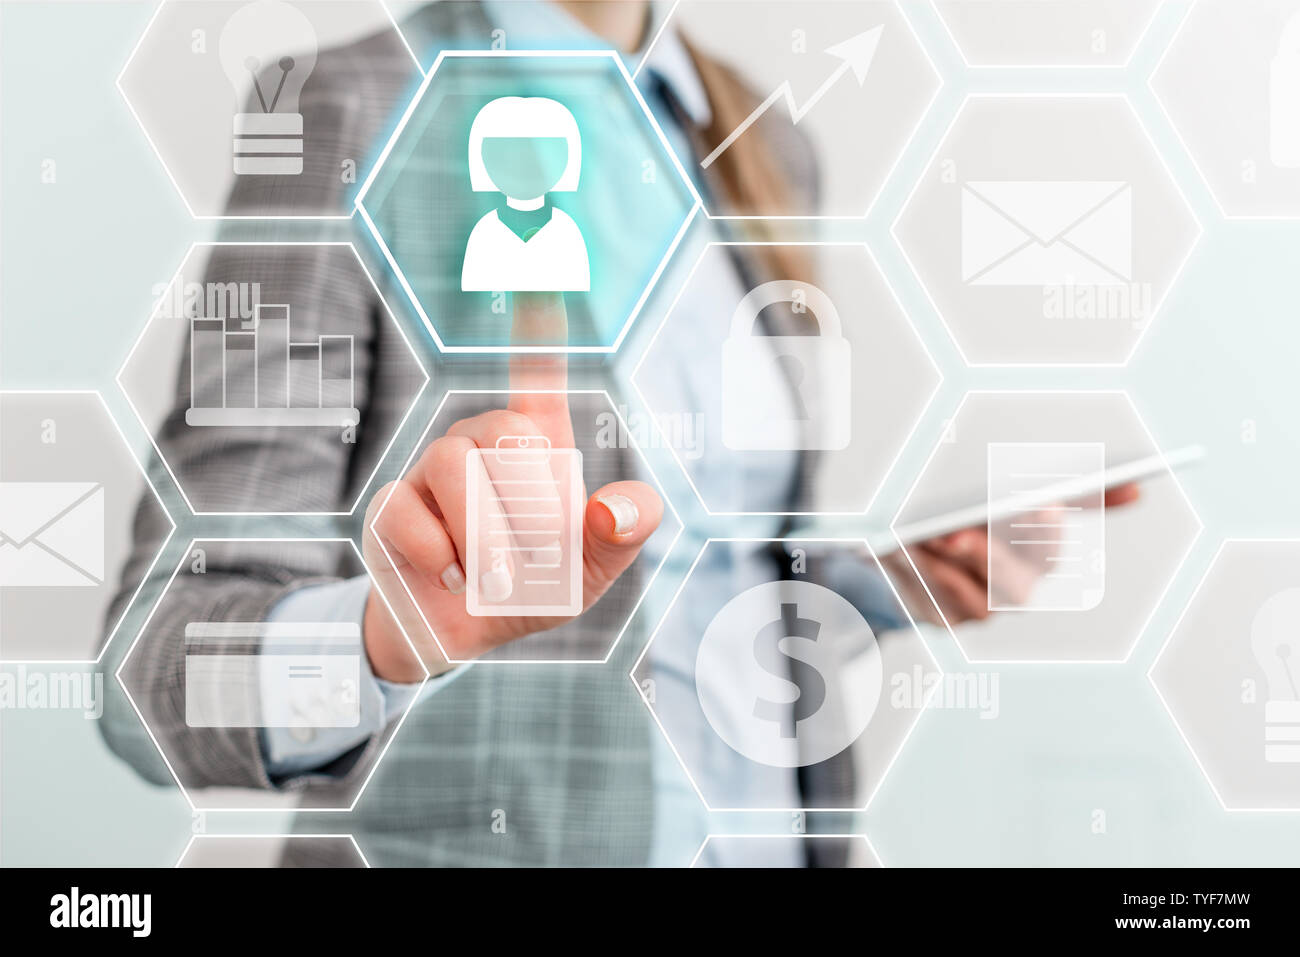 Lady front presenting hand blue glow futuristic modern technology tech look - Stock Image